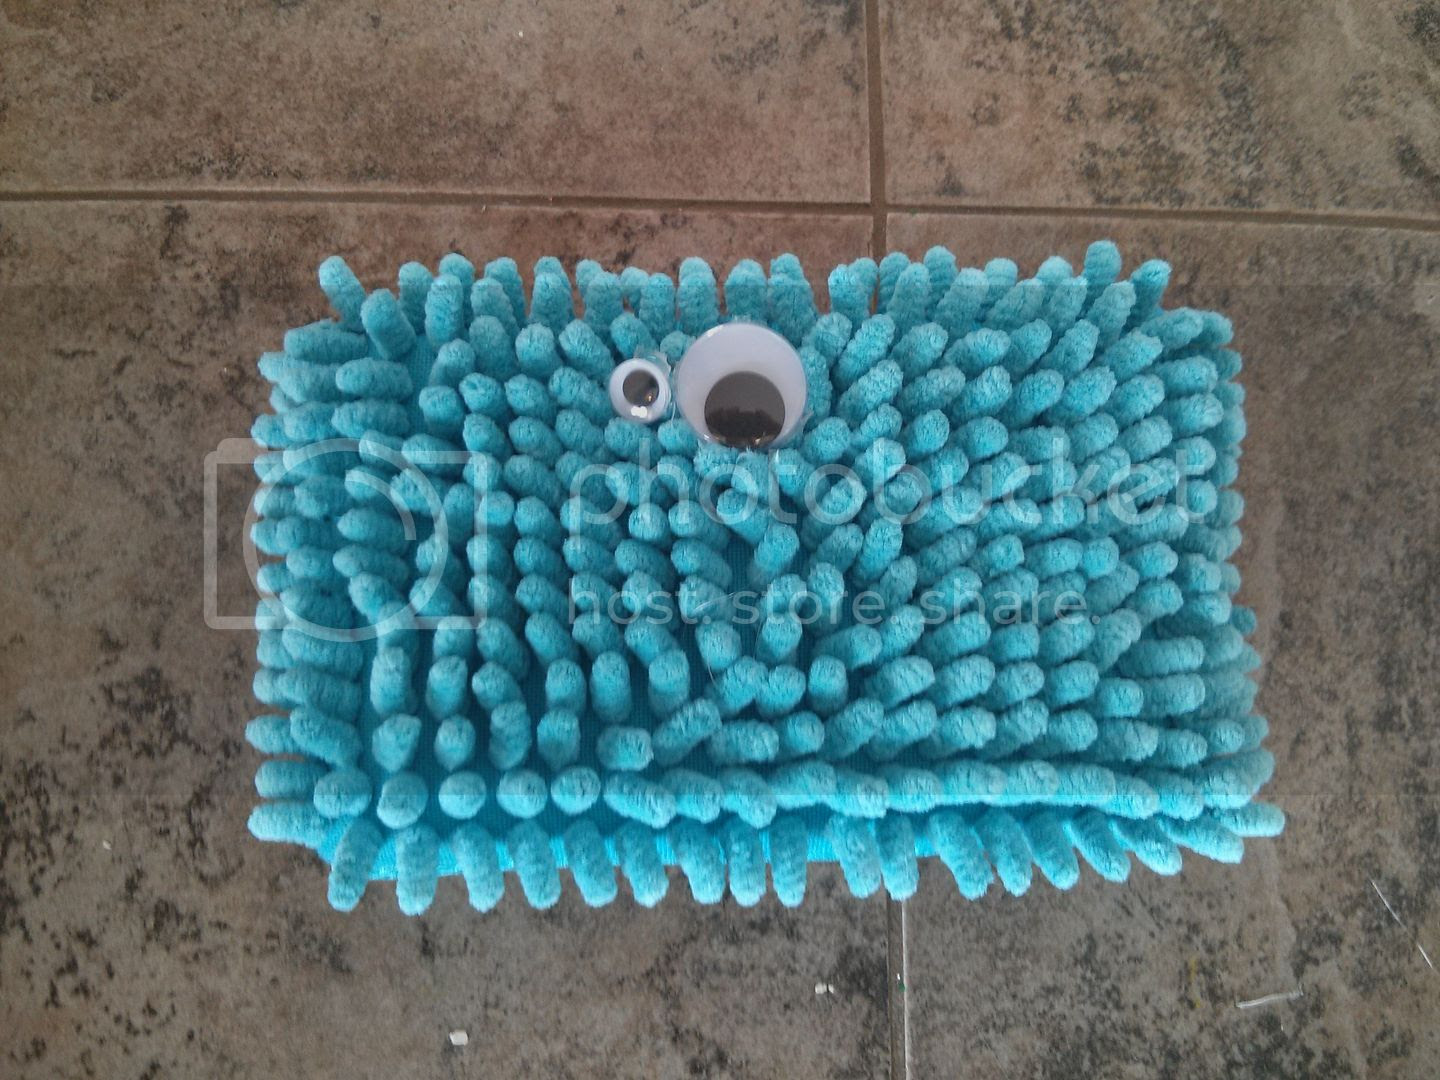 googly eye crafts for little boy's monster birthday party